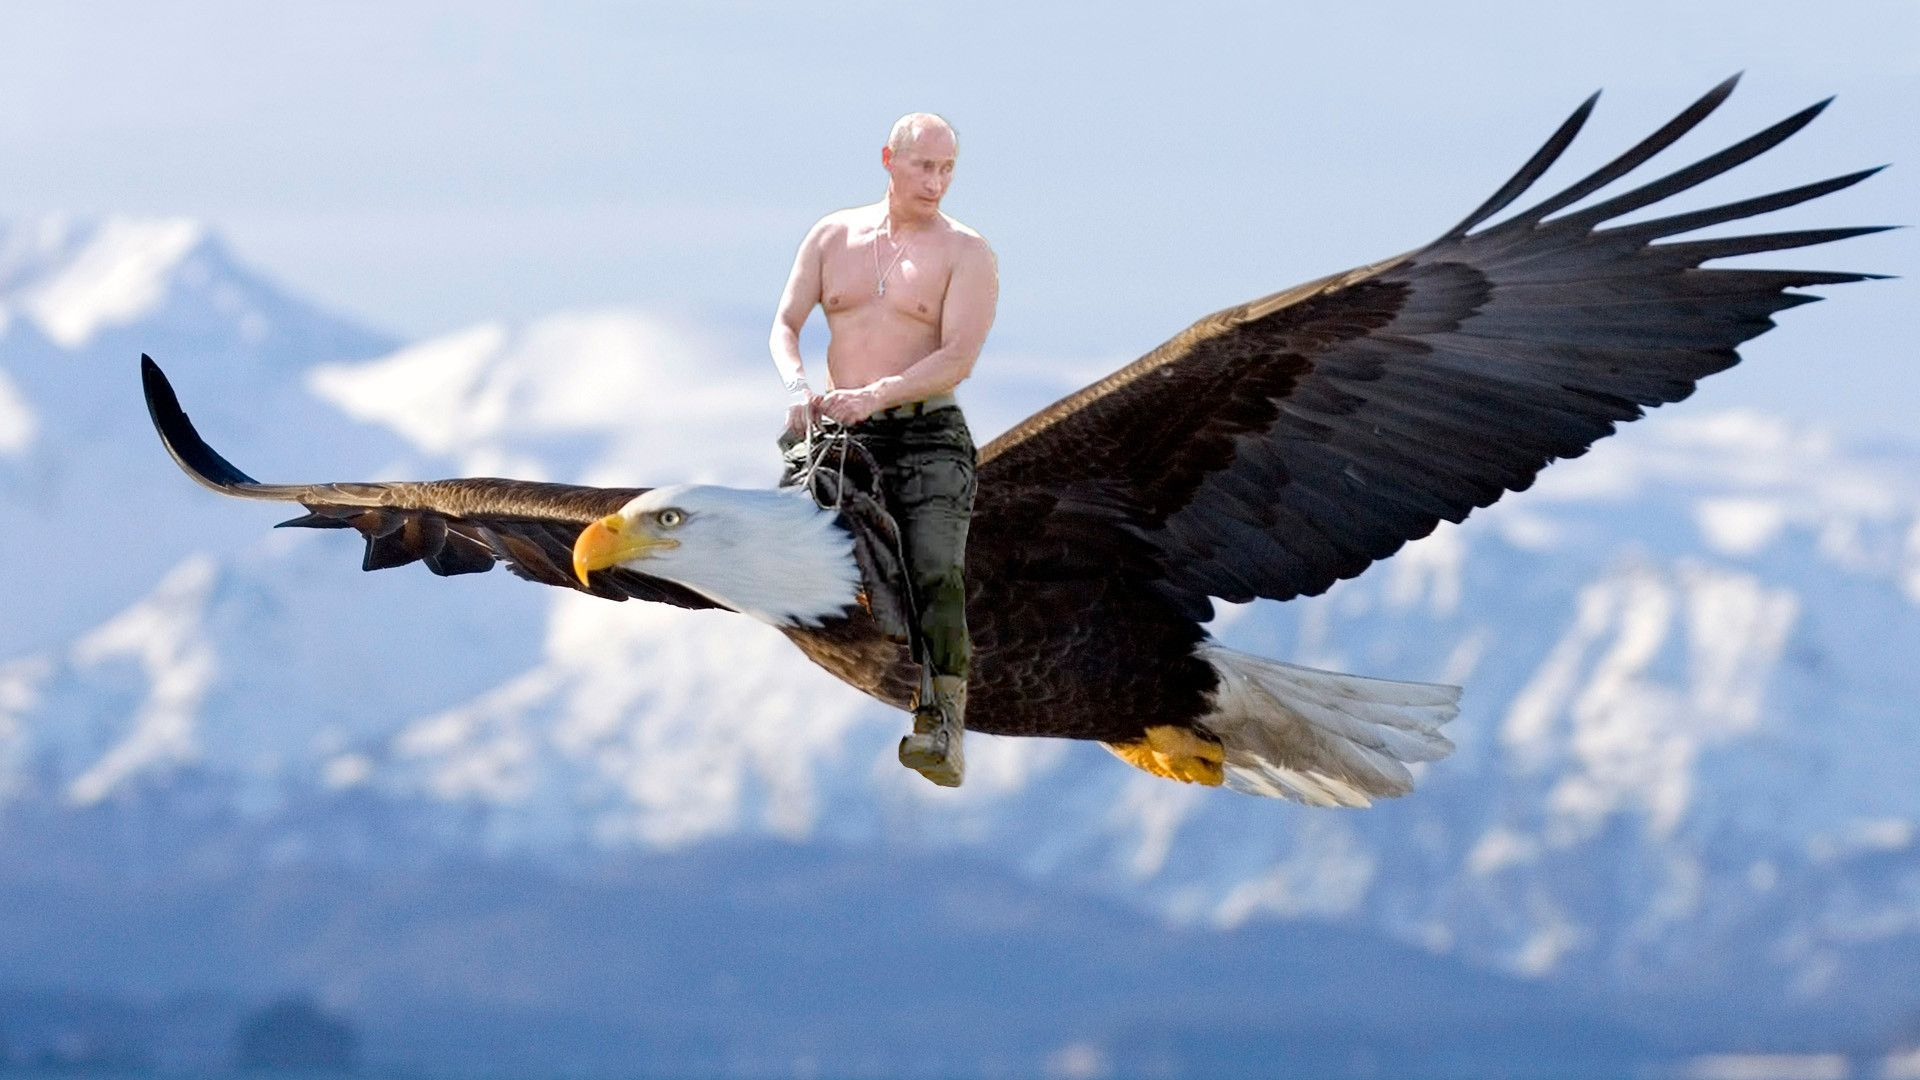 Image result for Russian bear vs bald eagle